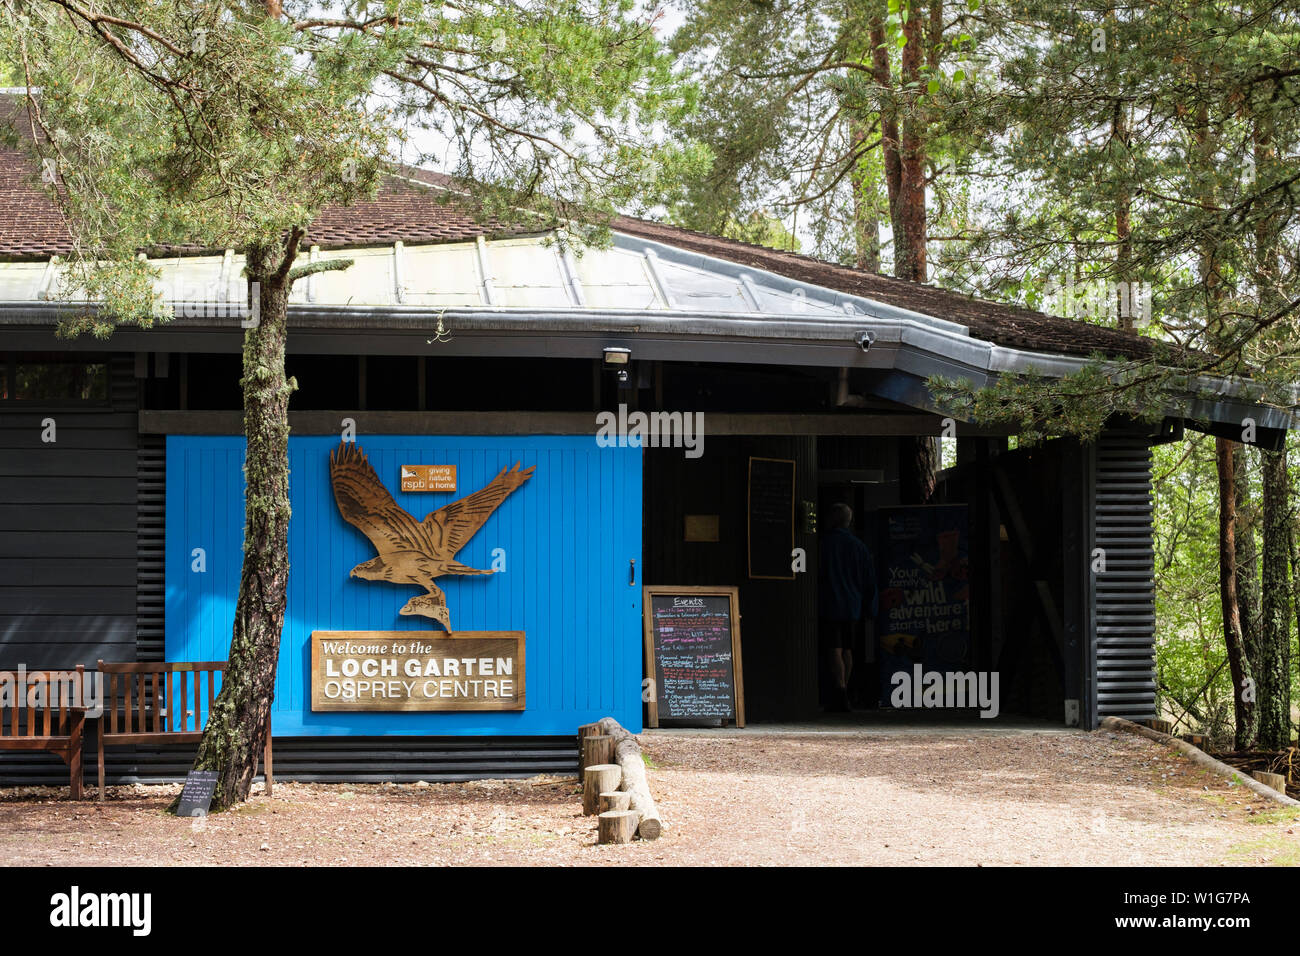 Entrance to RSPB Loch Garten Osprey Centre in Abernethy Forest Nature Reserve in Cairngorms National Park. Nethybridge Strathspey Highland Scotland UK Stock Photo